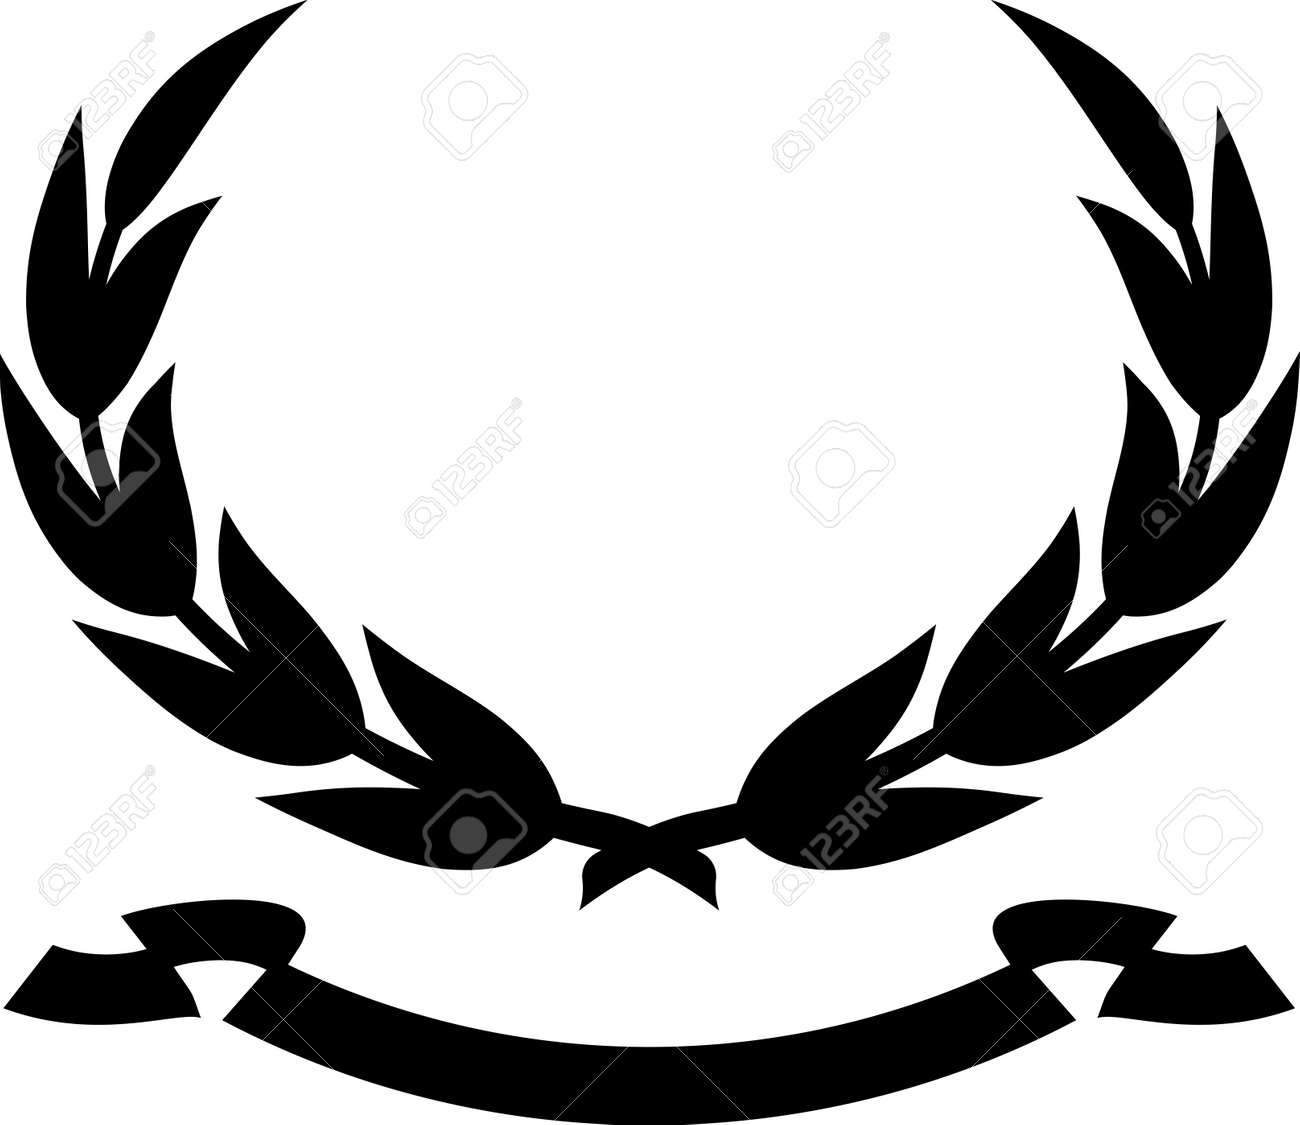 laurel wreath and ribbon isolated on white - 13464841